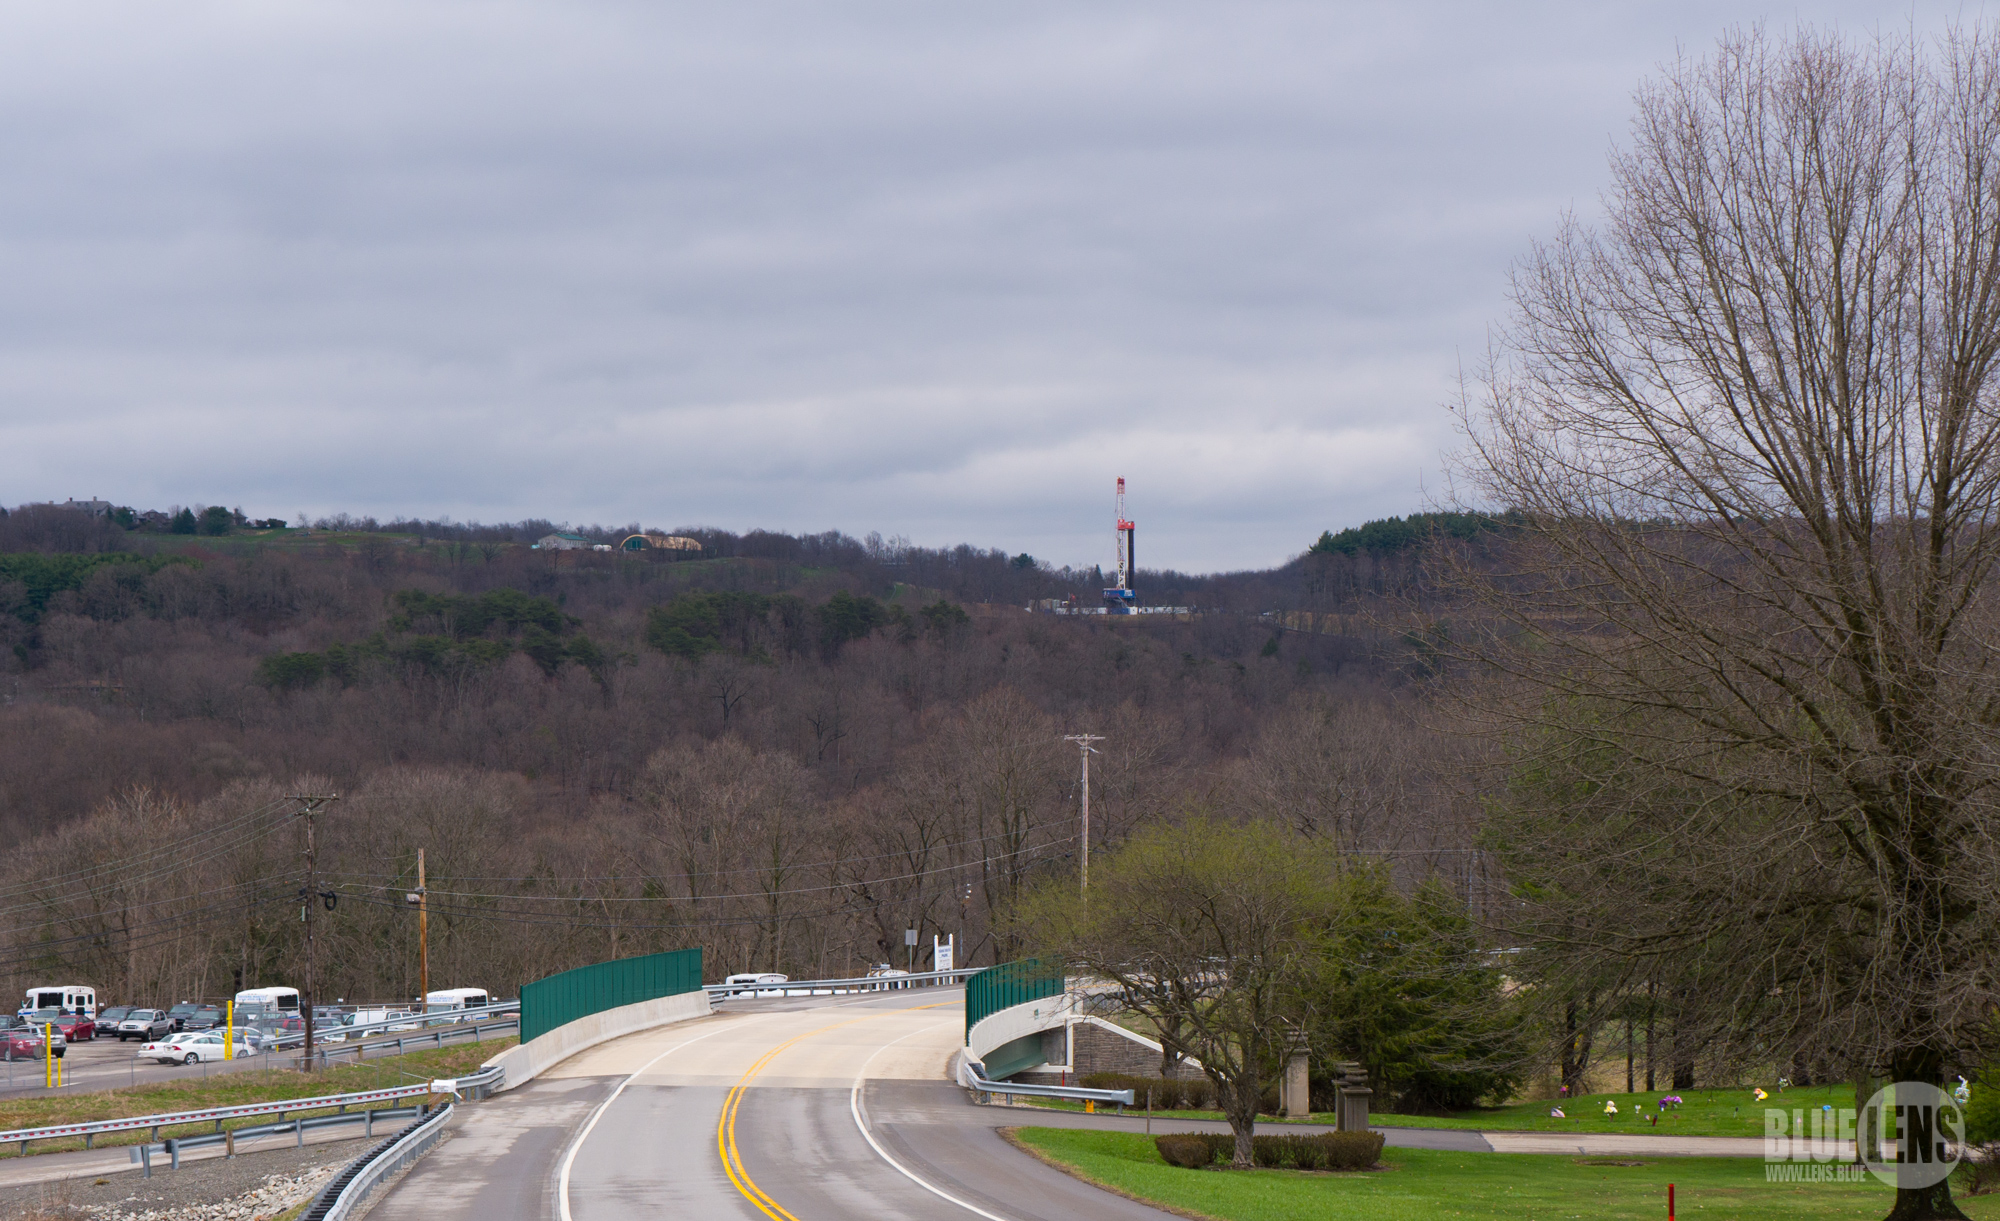 A photograph shows a rural landscape, and on the hill in the distance is a large, high tech drill.